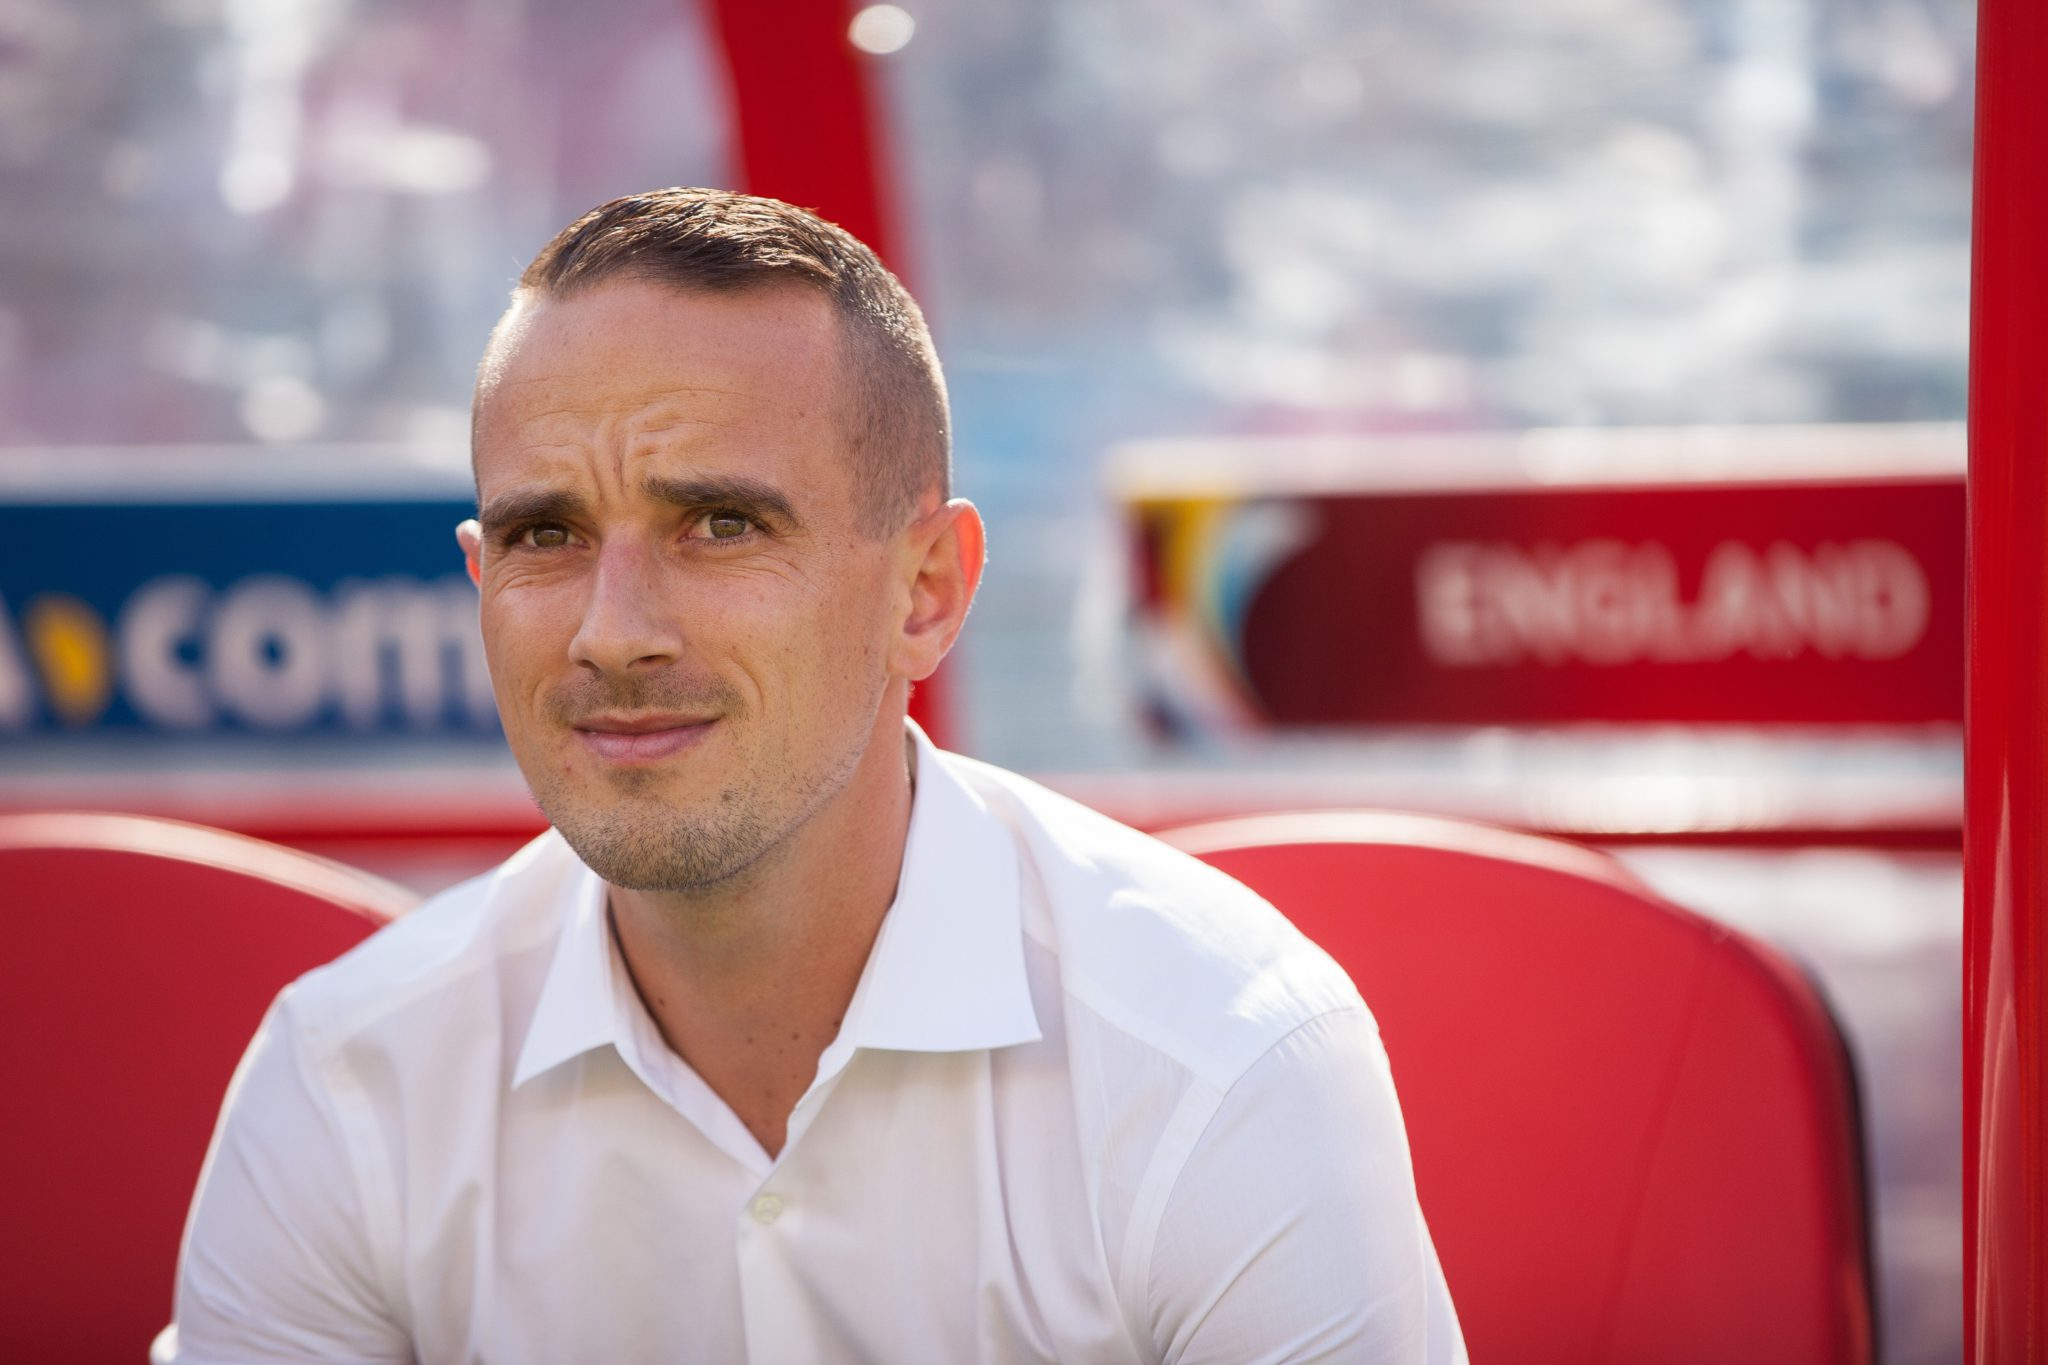 Mark Sampson is confident in the Lionesses' ability to get a win over Spain. (Getty Images)